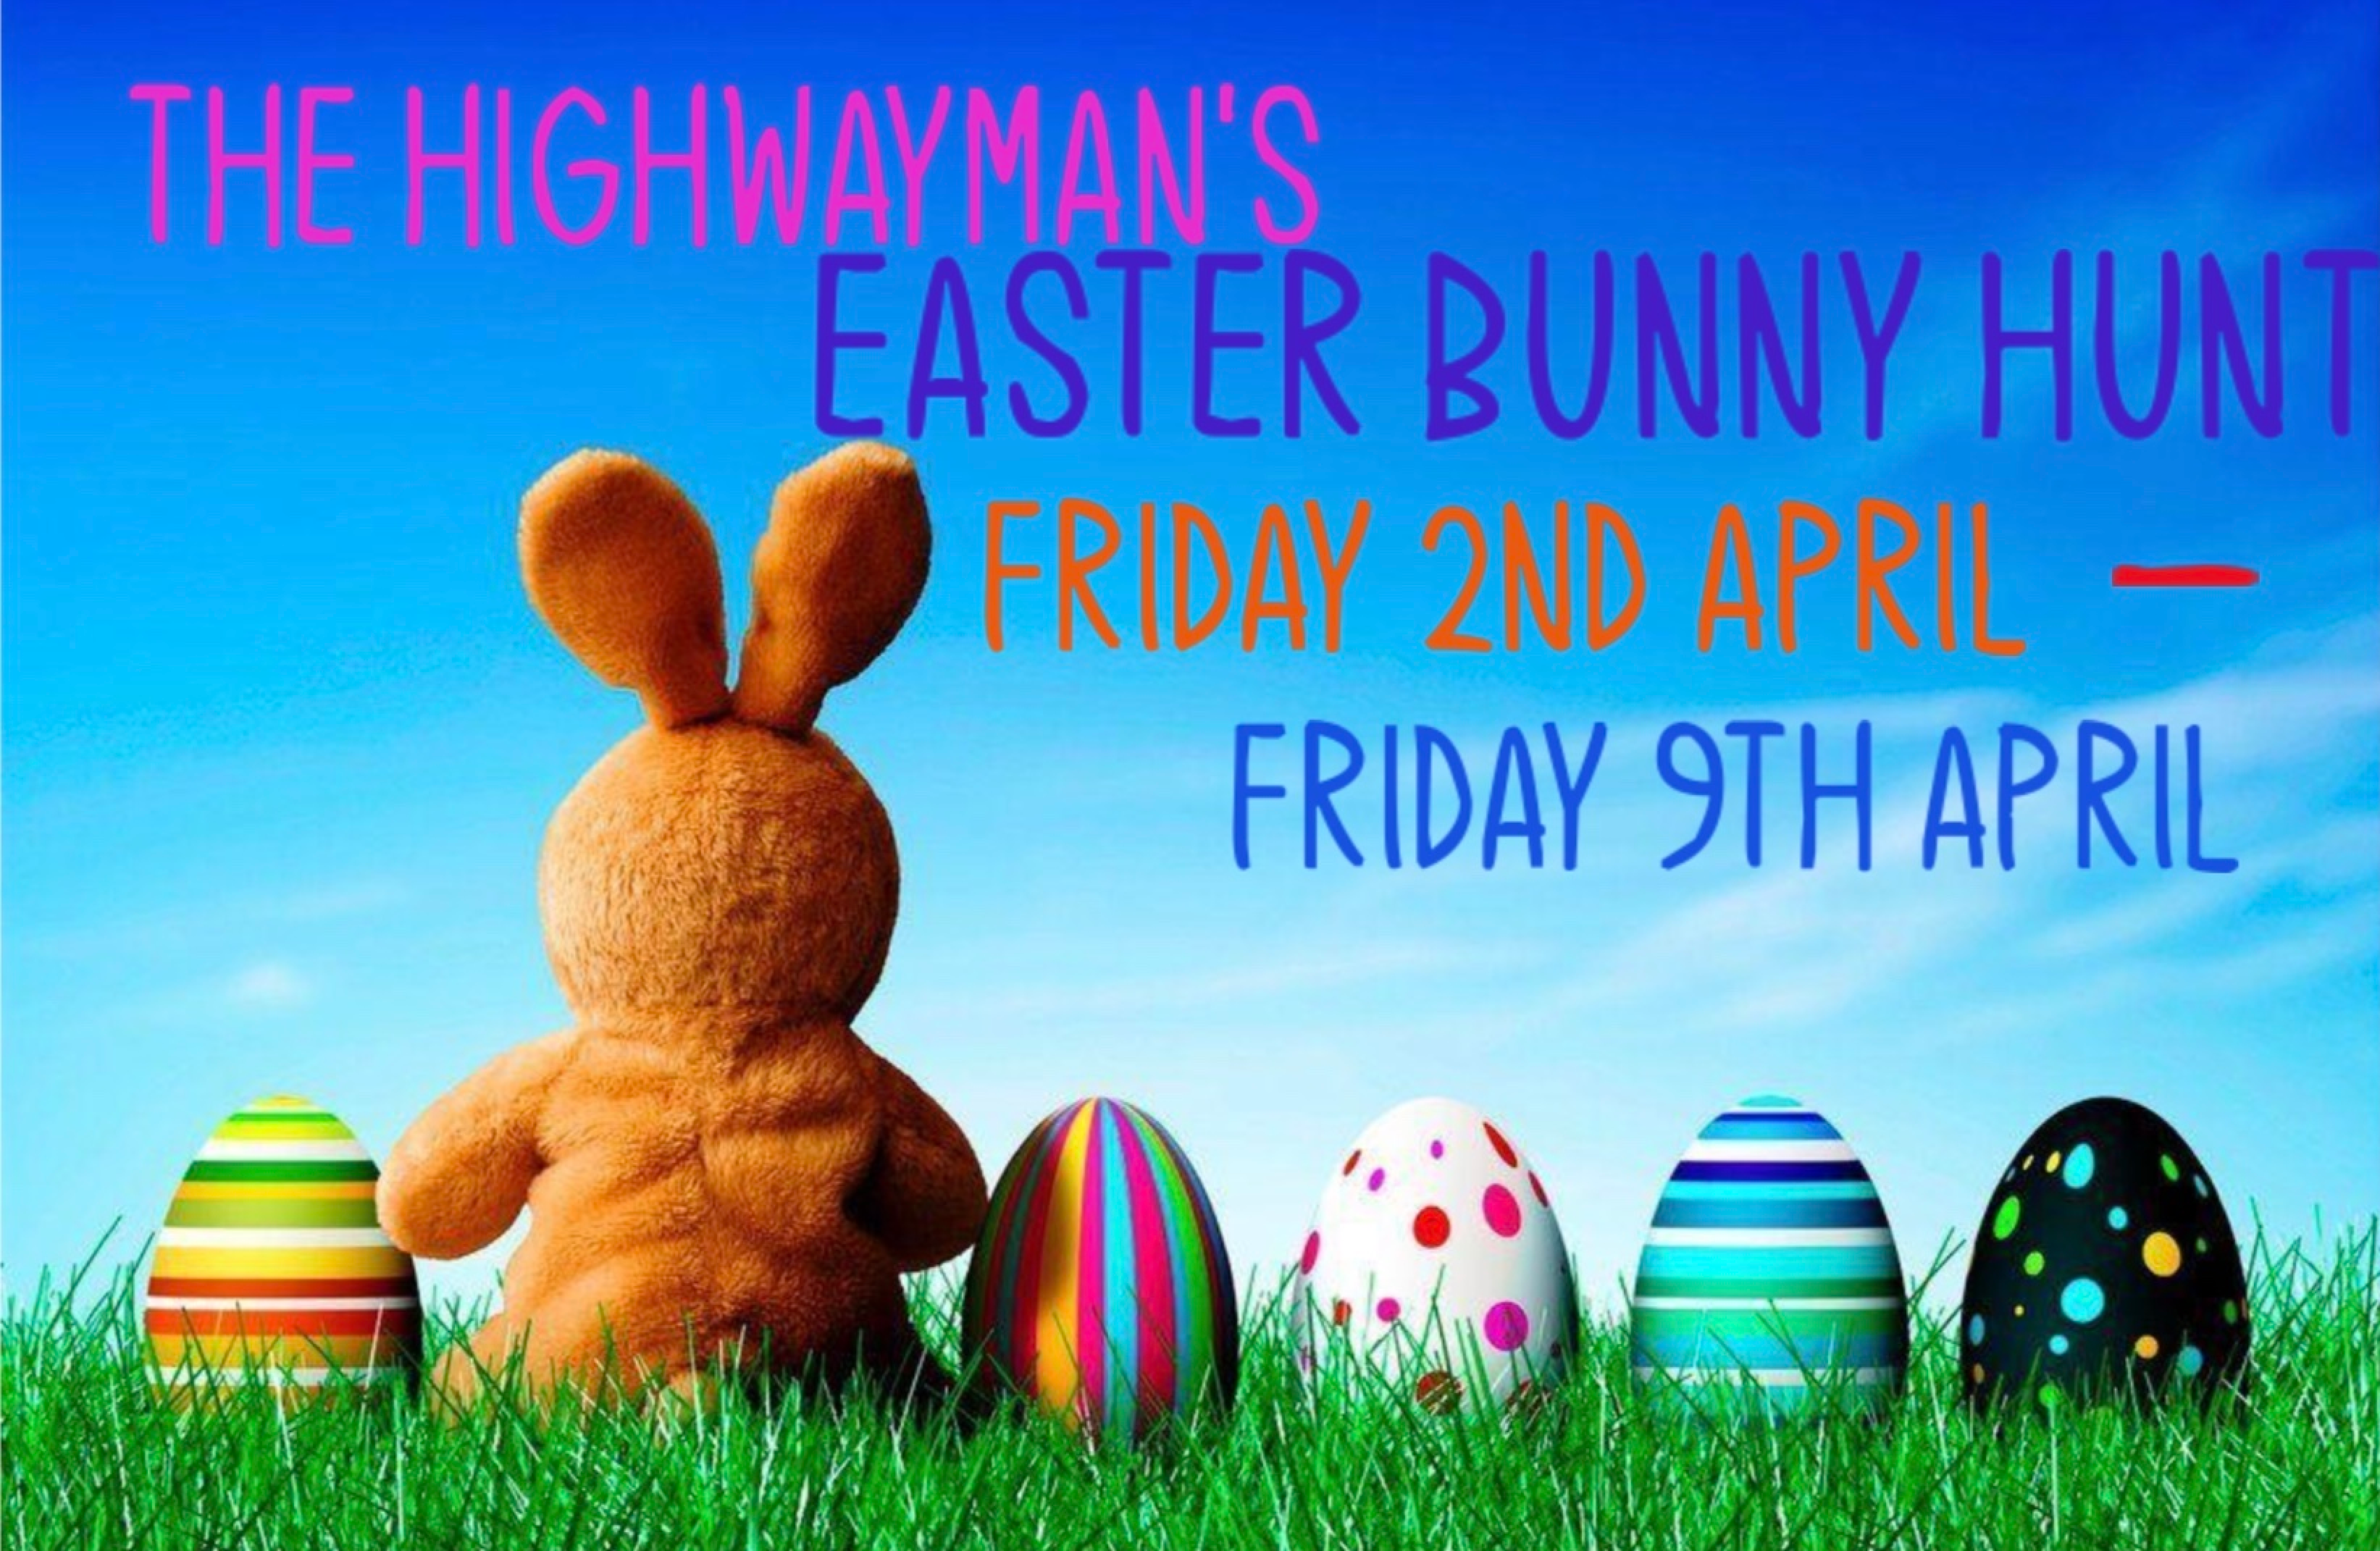 Easter Bunny Hunt in Burrow with The Highwayman